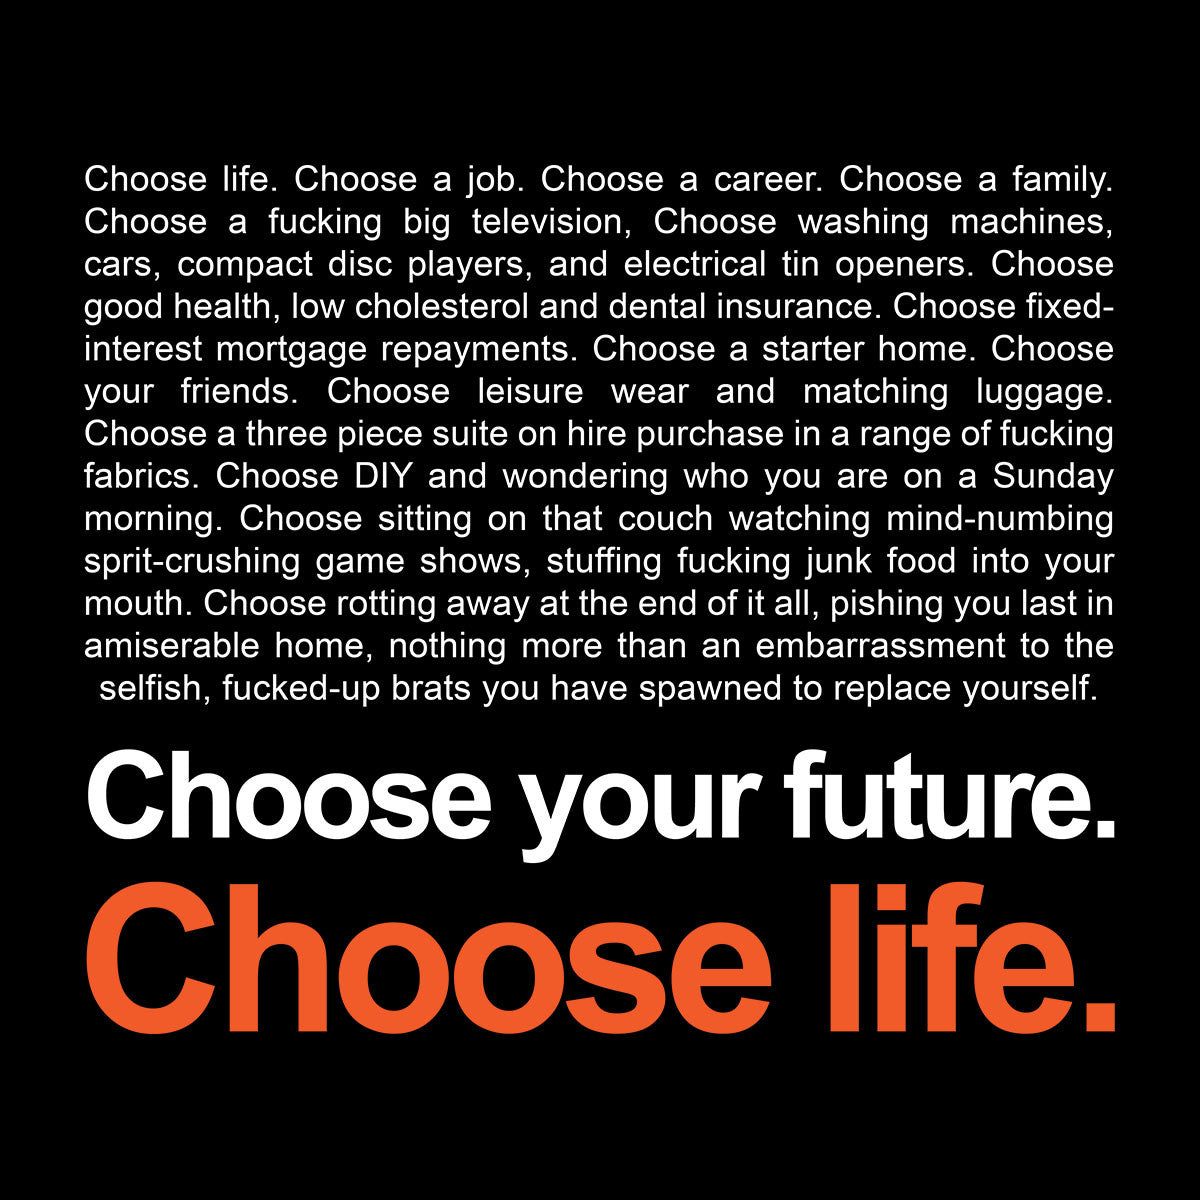 choses in life Life is full of choices everything that happens to us in life is a result of our choices we choose to go to the gym or not, to have a date night with our significant other or not, to hit the snooze button or get up.